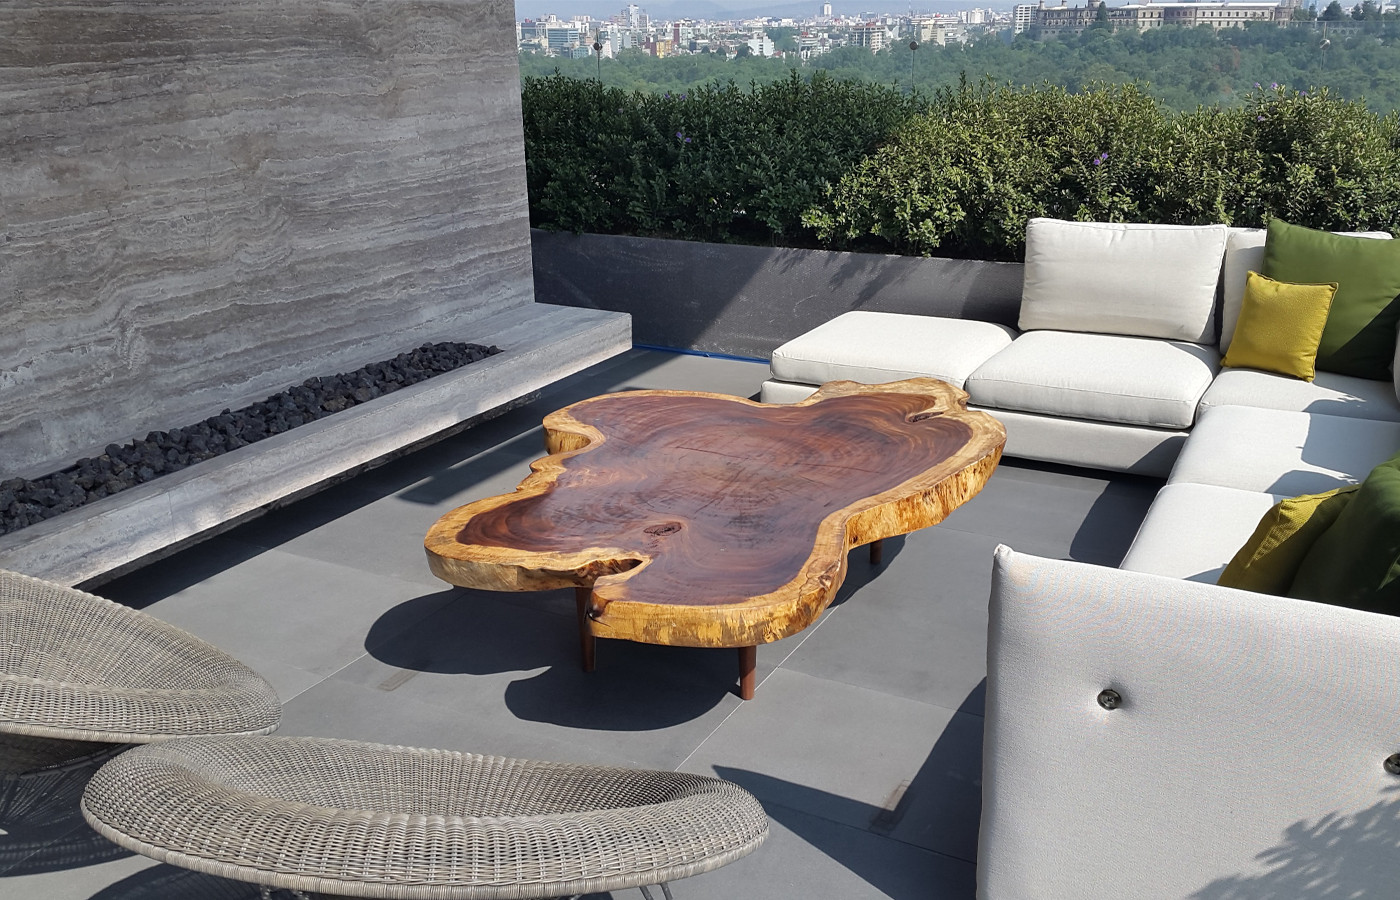 Best ideas about Modern Outdoor Furniture . Save or Pin Parota Wood Outdoor Furniture Now.